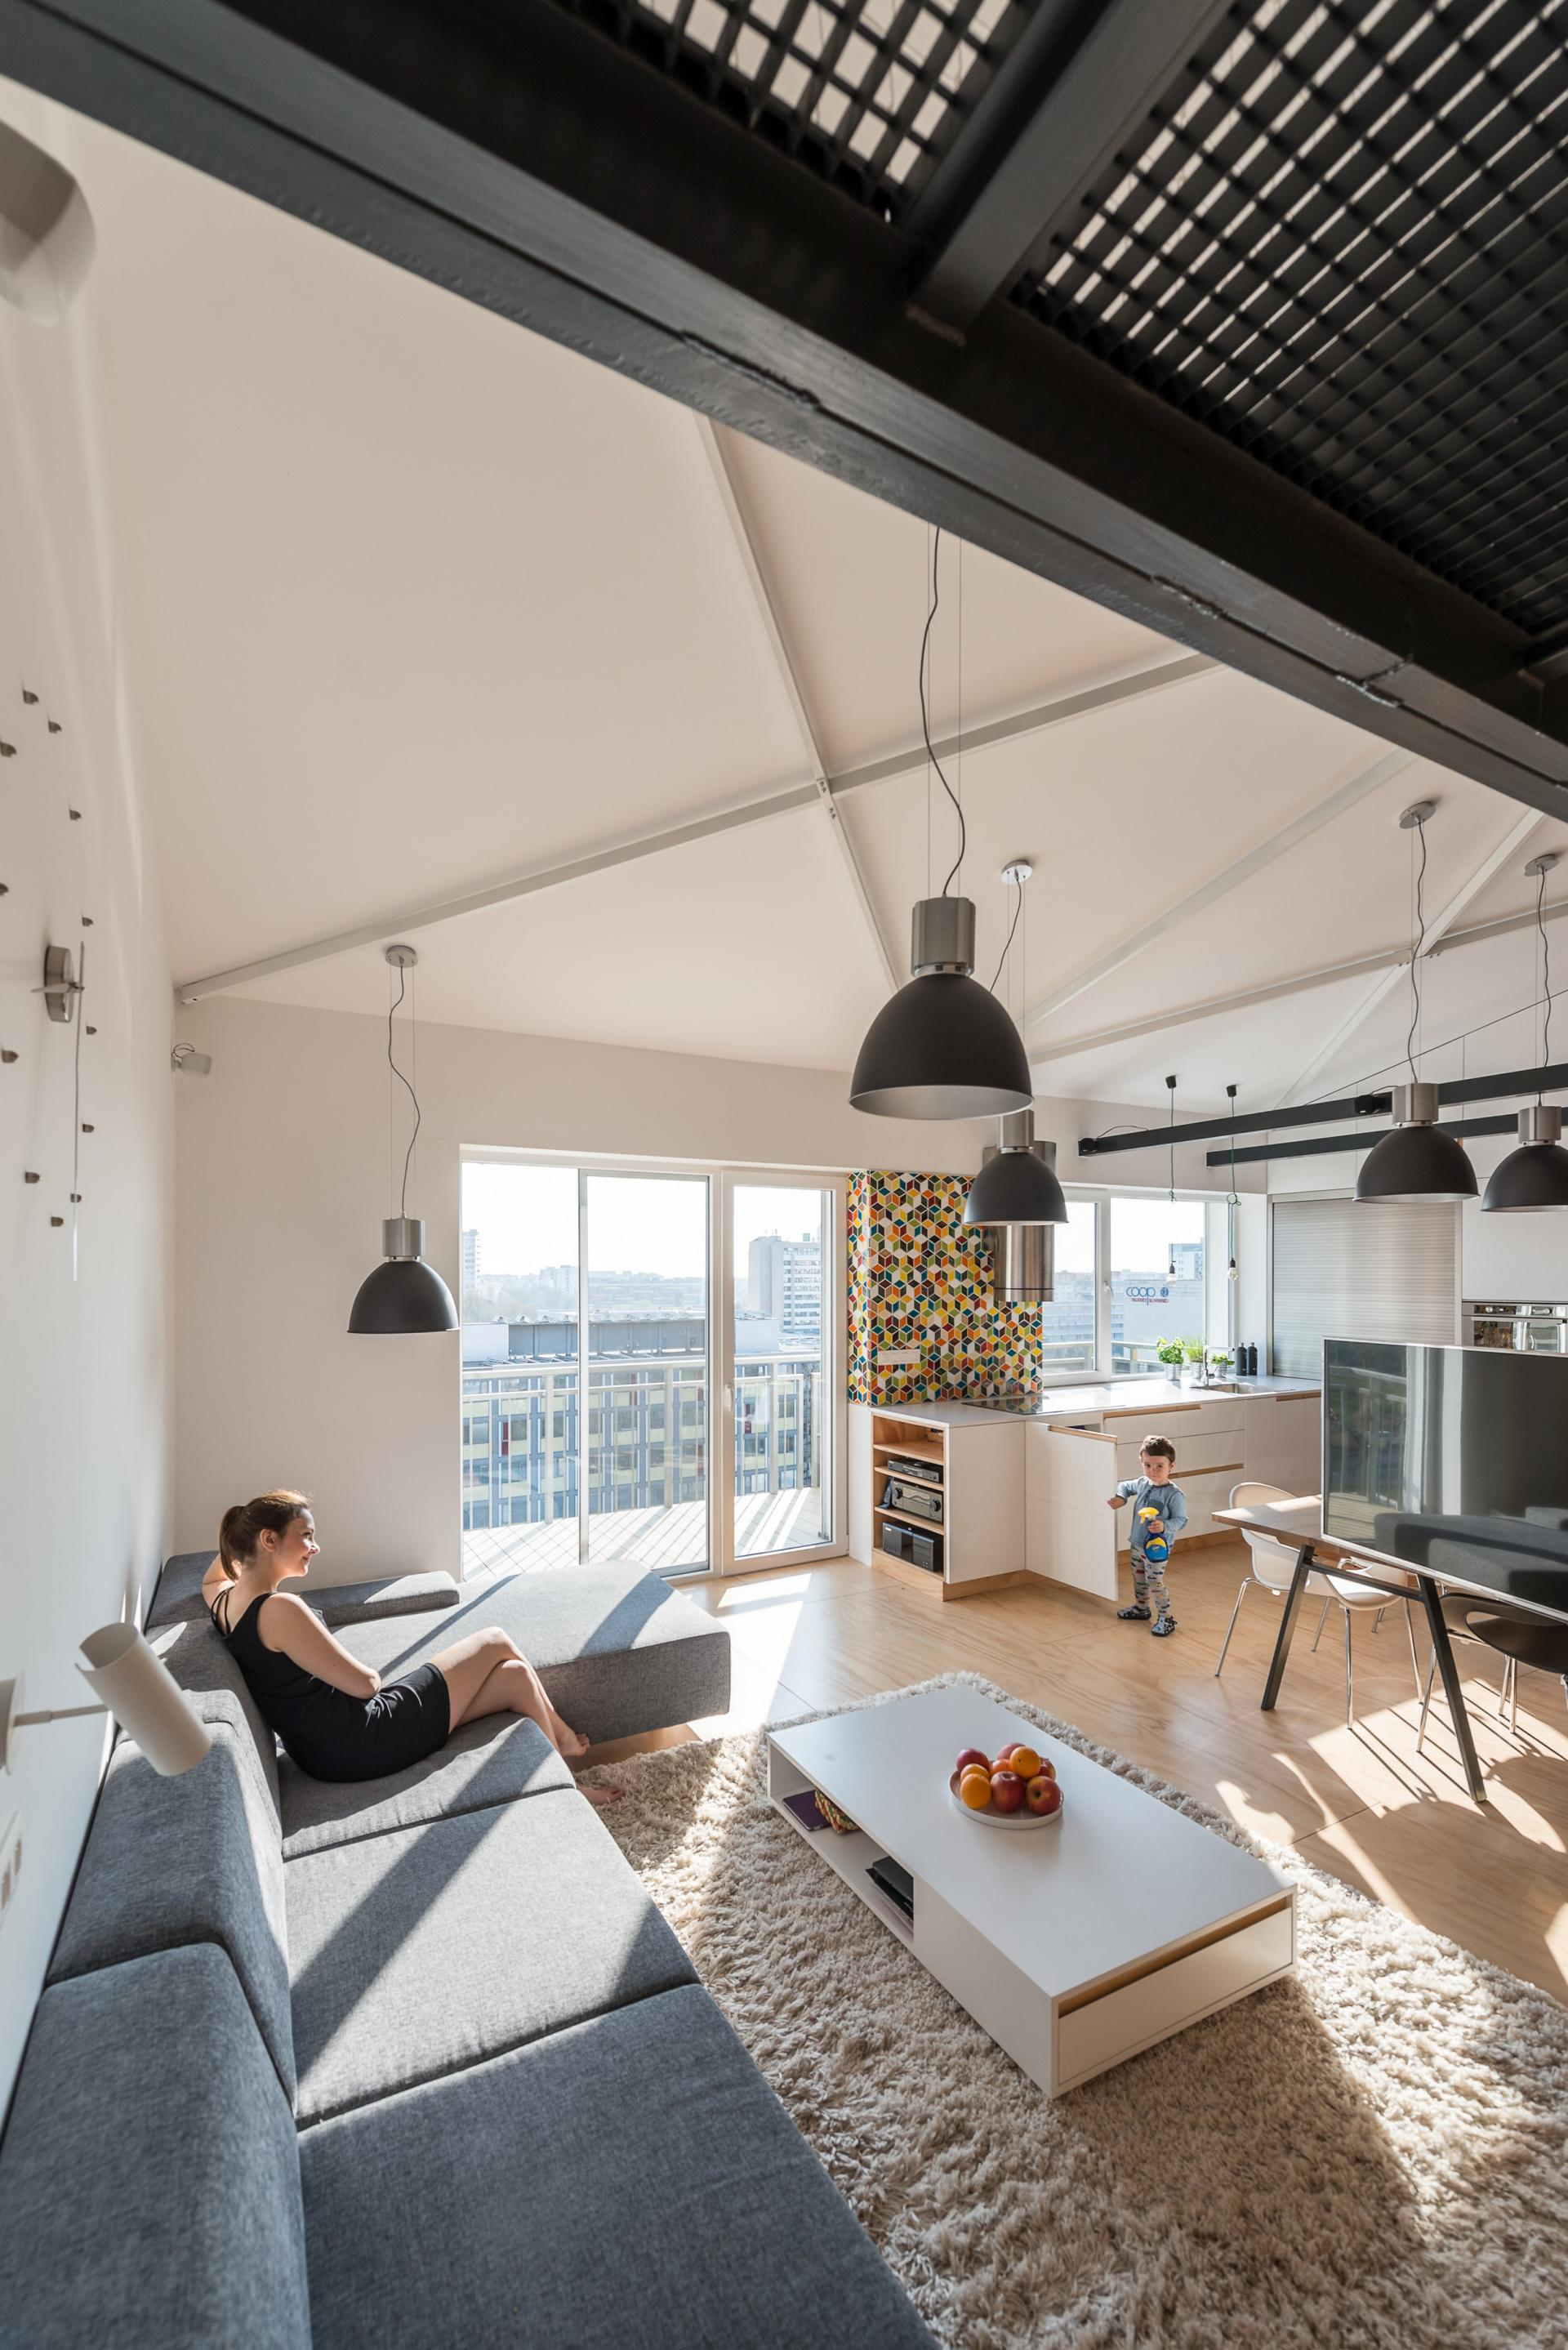 Loft Design For A Family That Makes Clever Use Of Its Space